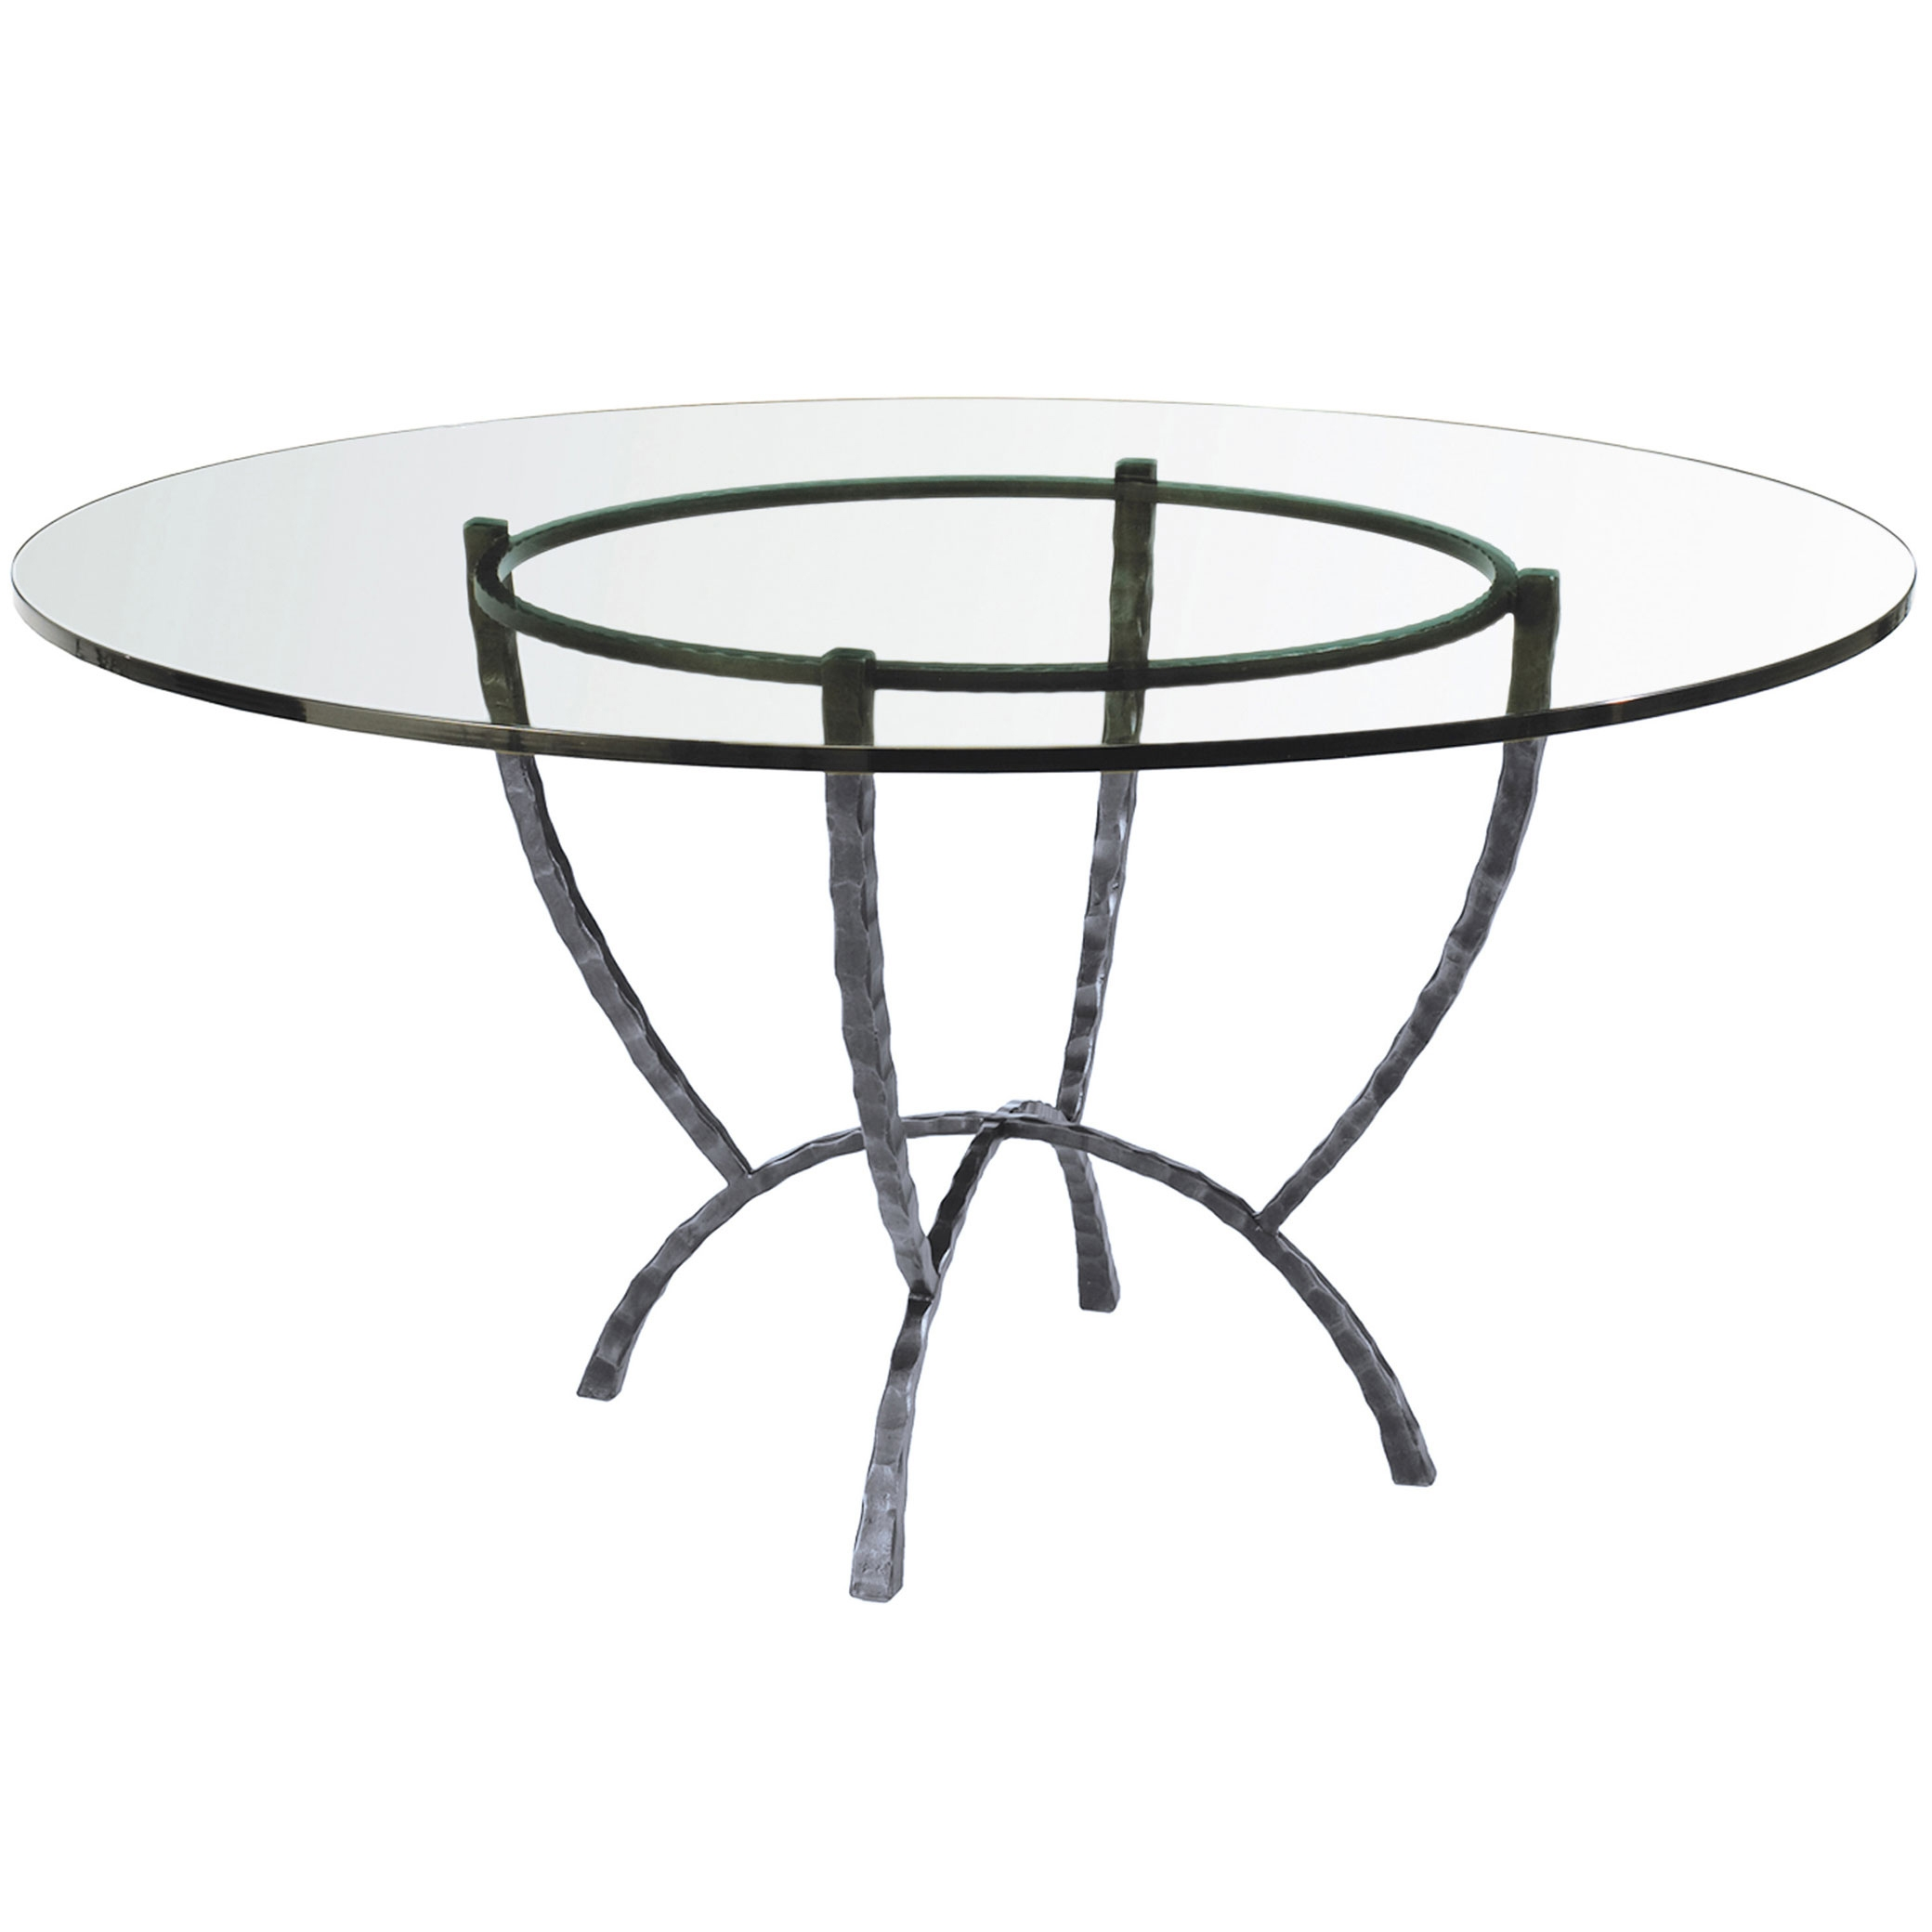 Home Tables Dining Tables Round Dining Tables